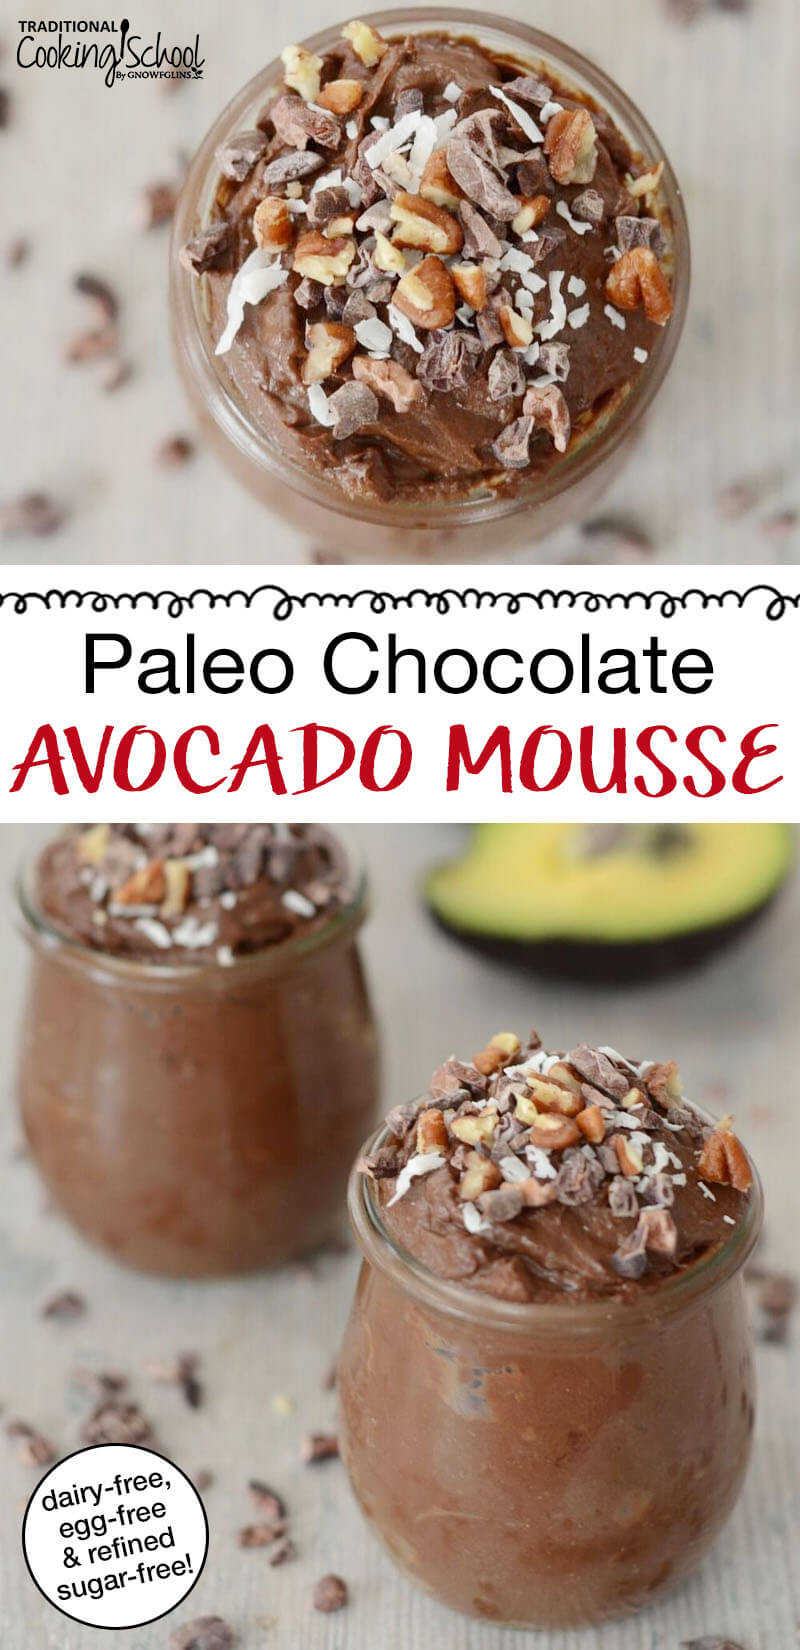 "photo collage of chocolate mousse garnished with chopped pecans, shredded coconut, and cacao nibs, with text overlay: ""Paleo Chocolate Avocado Mousse"""